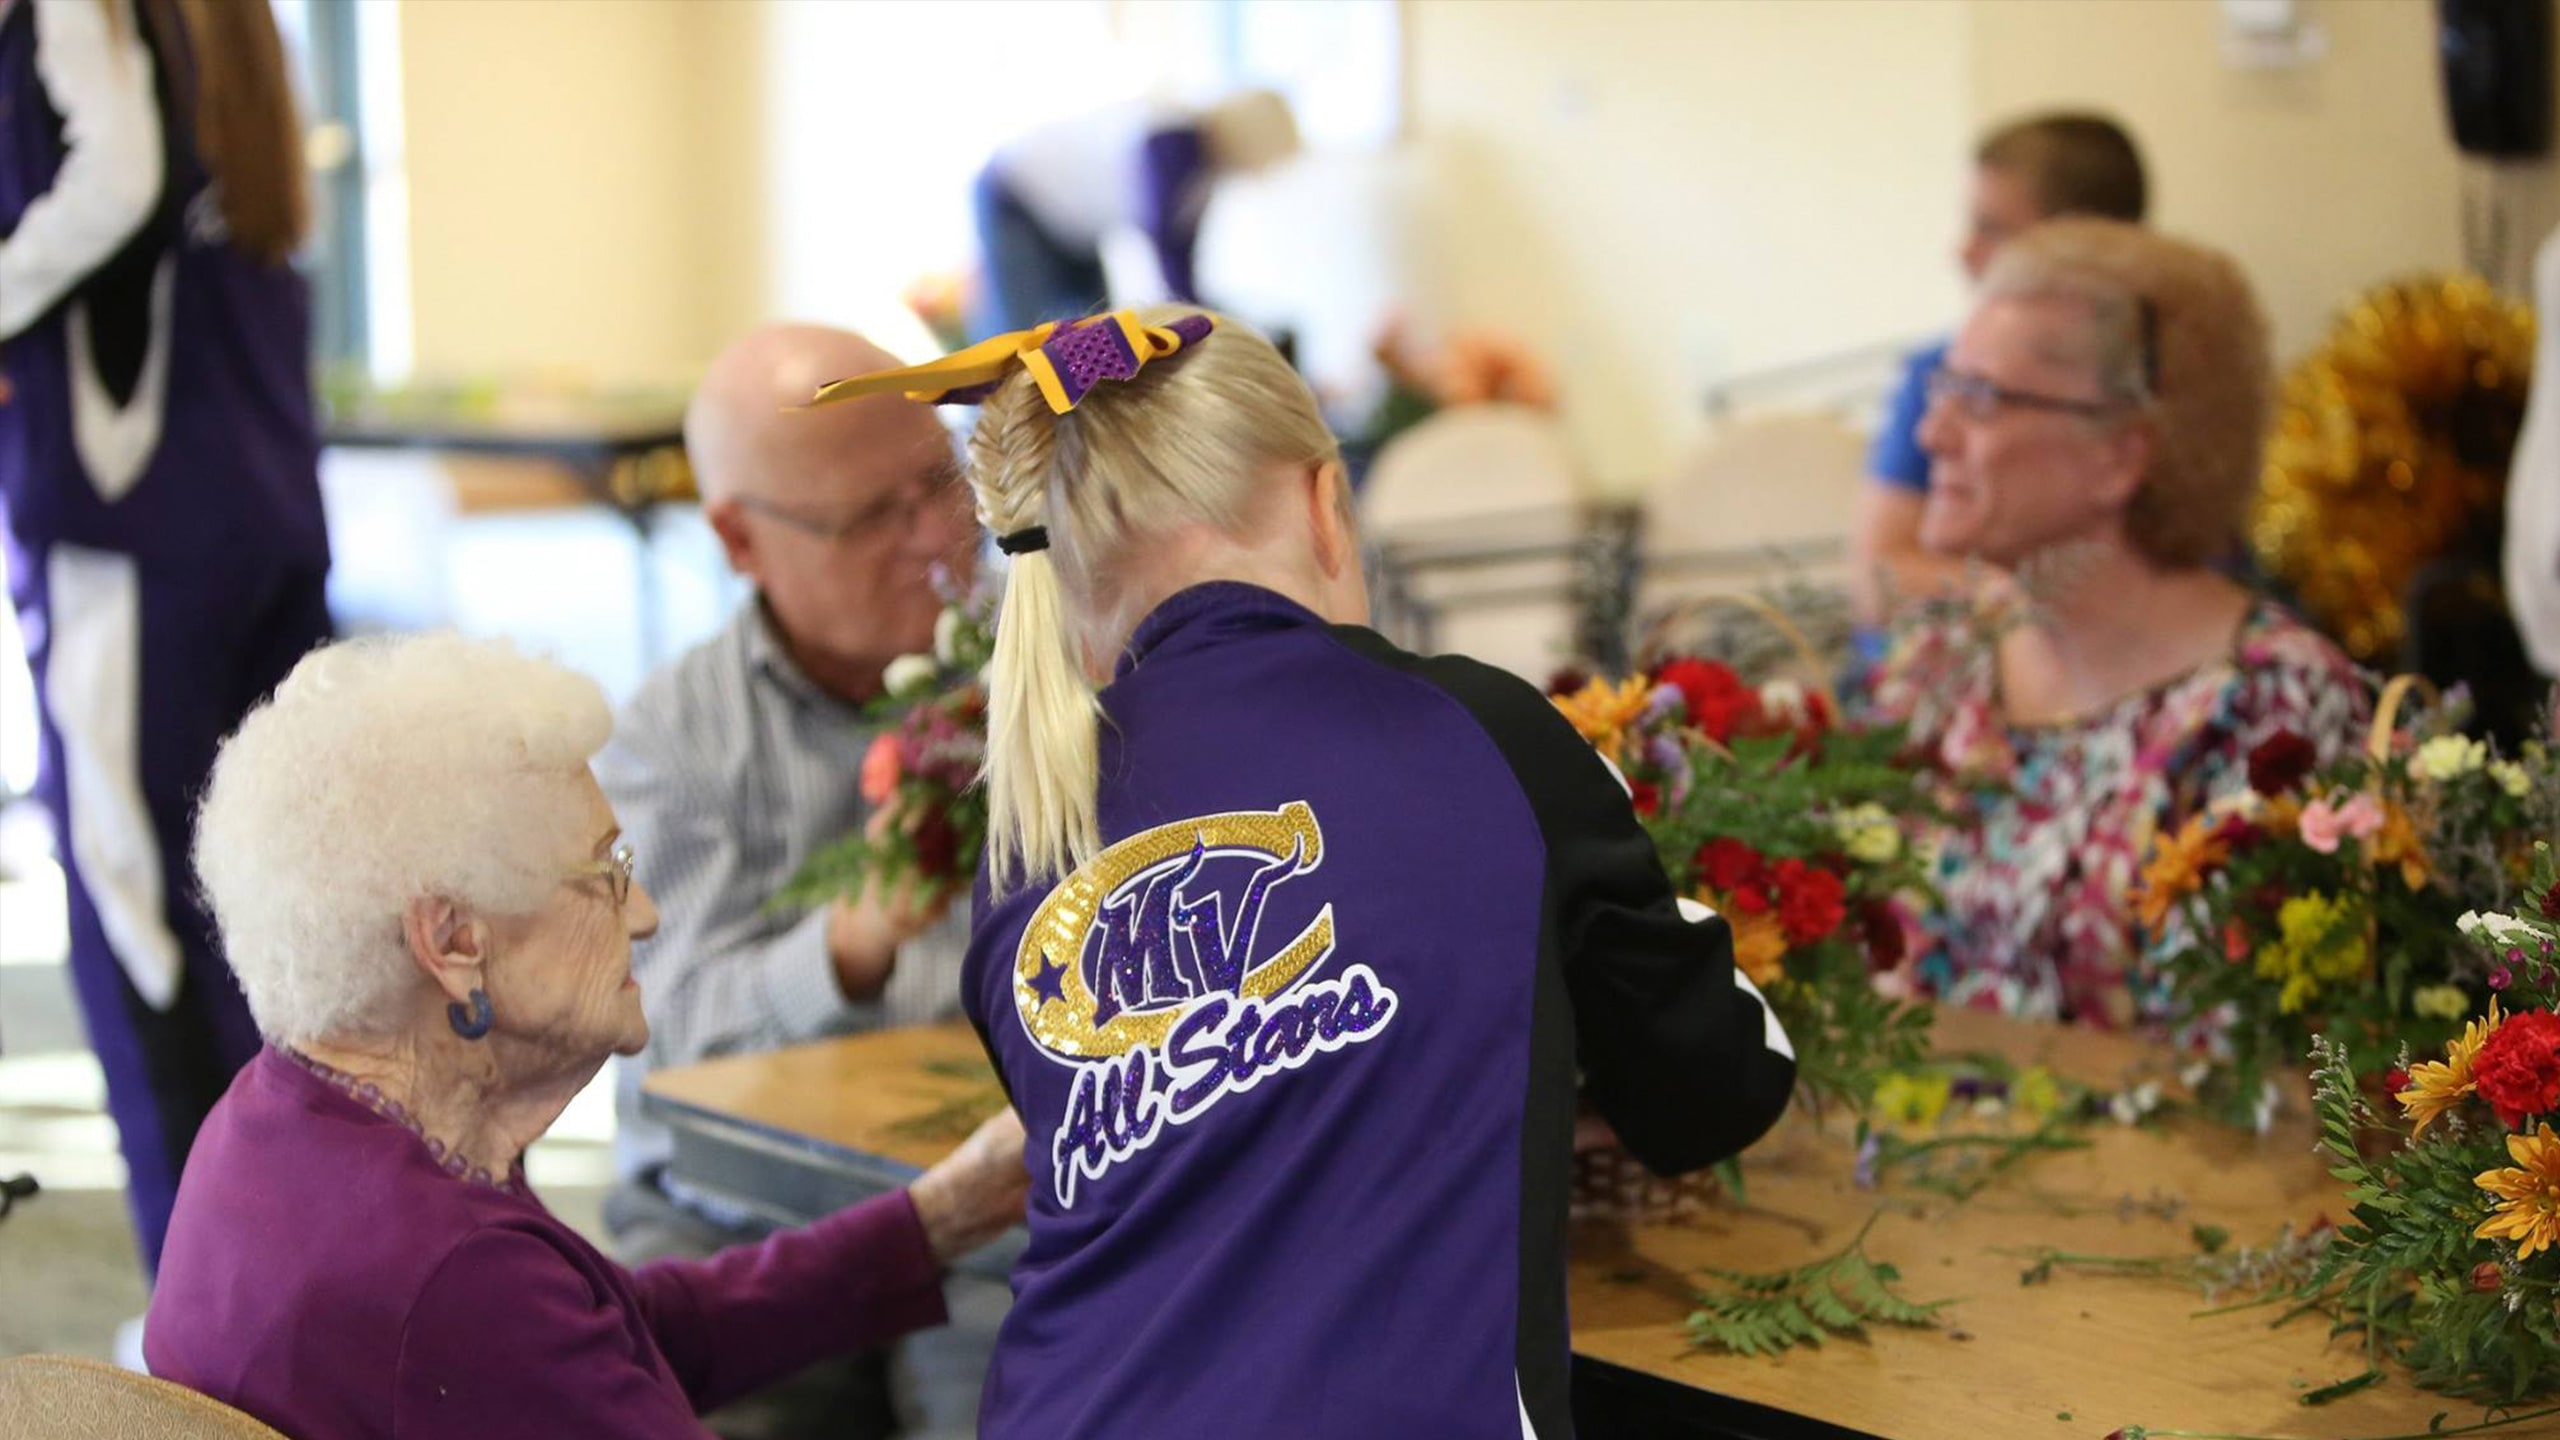 Community service event at a local nursing home